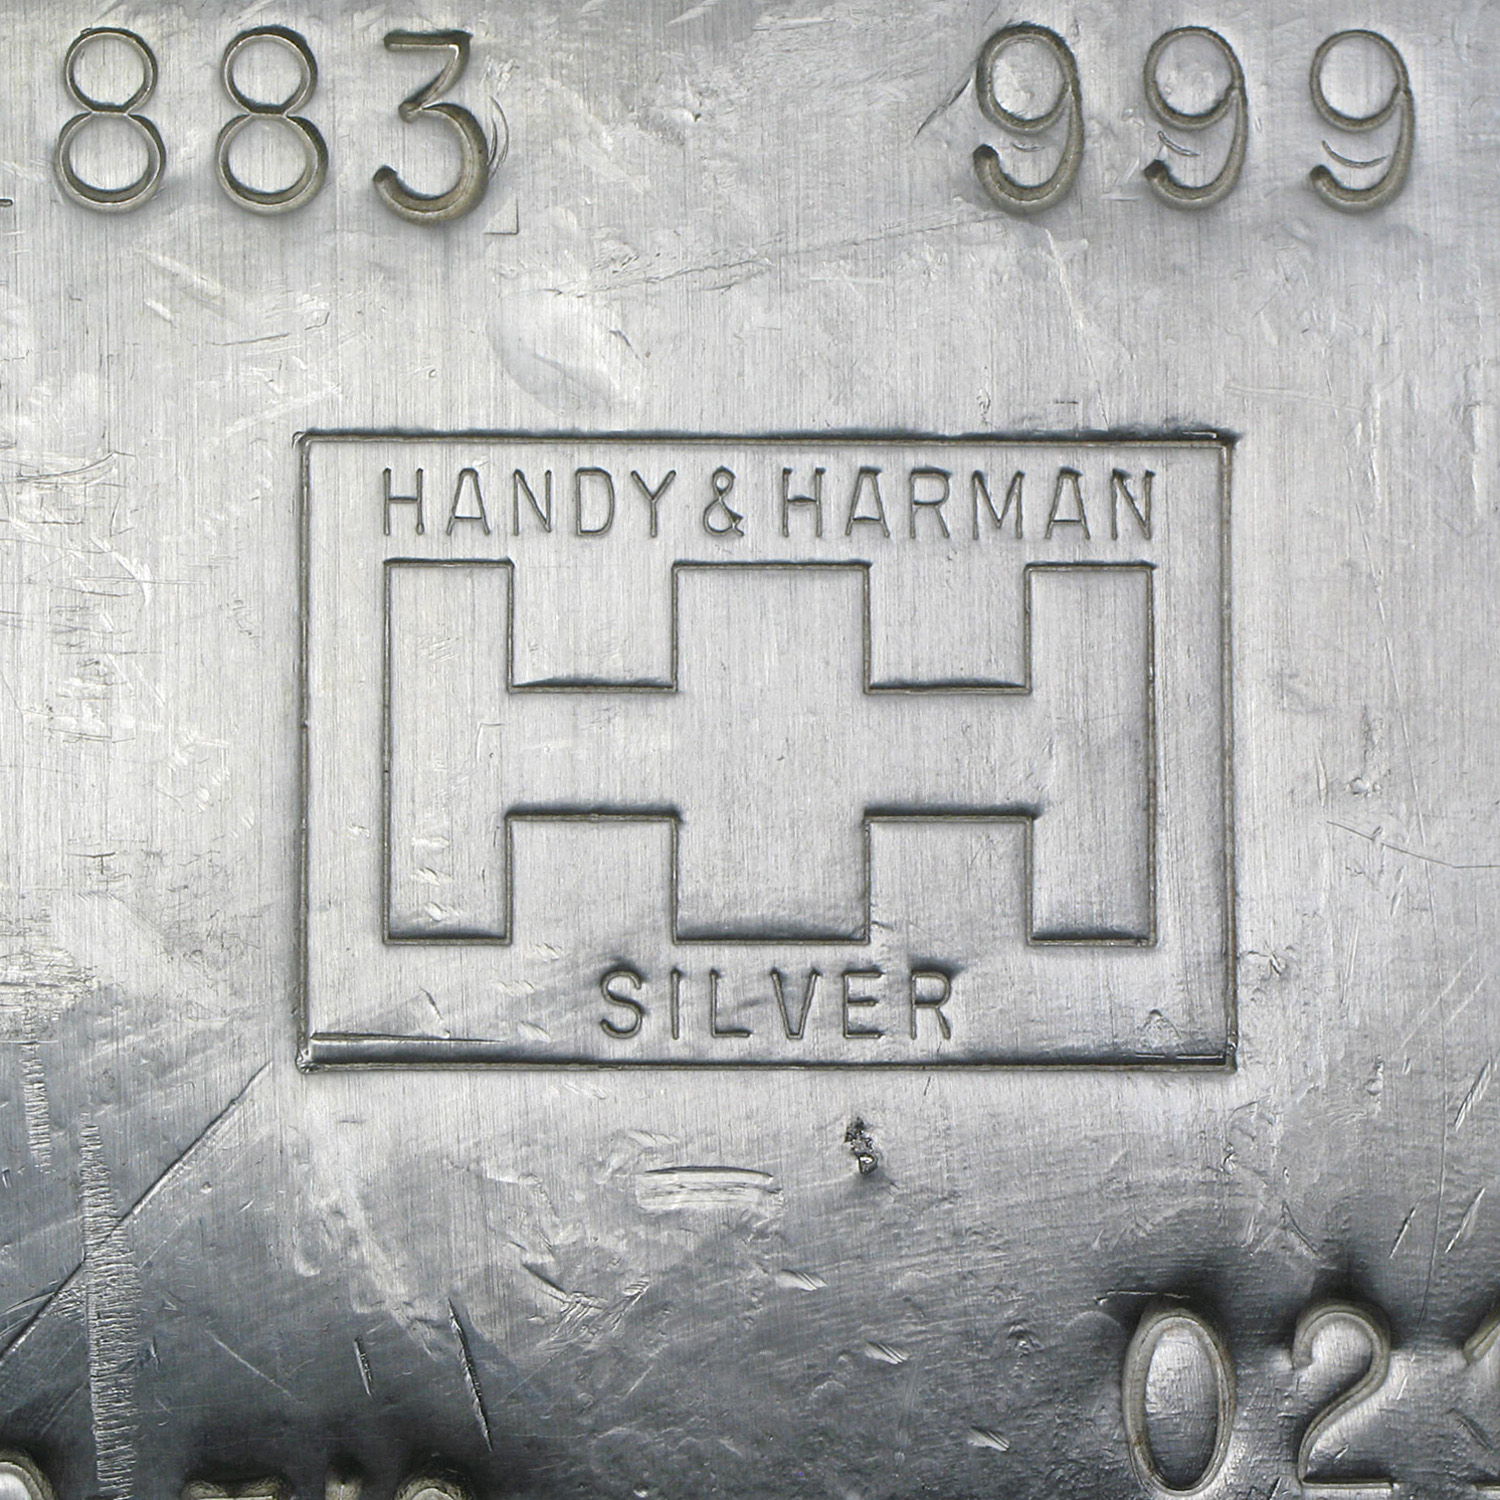 100 oz Silver Bars - Handy & Harmon